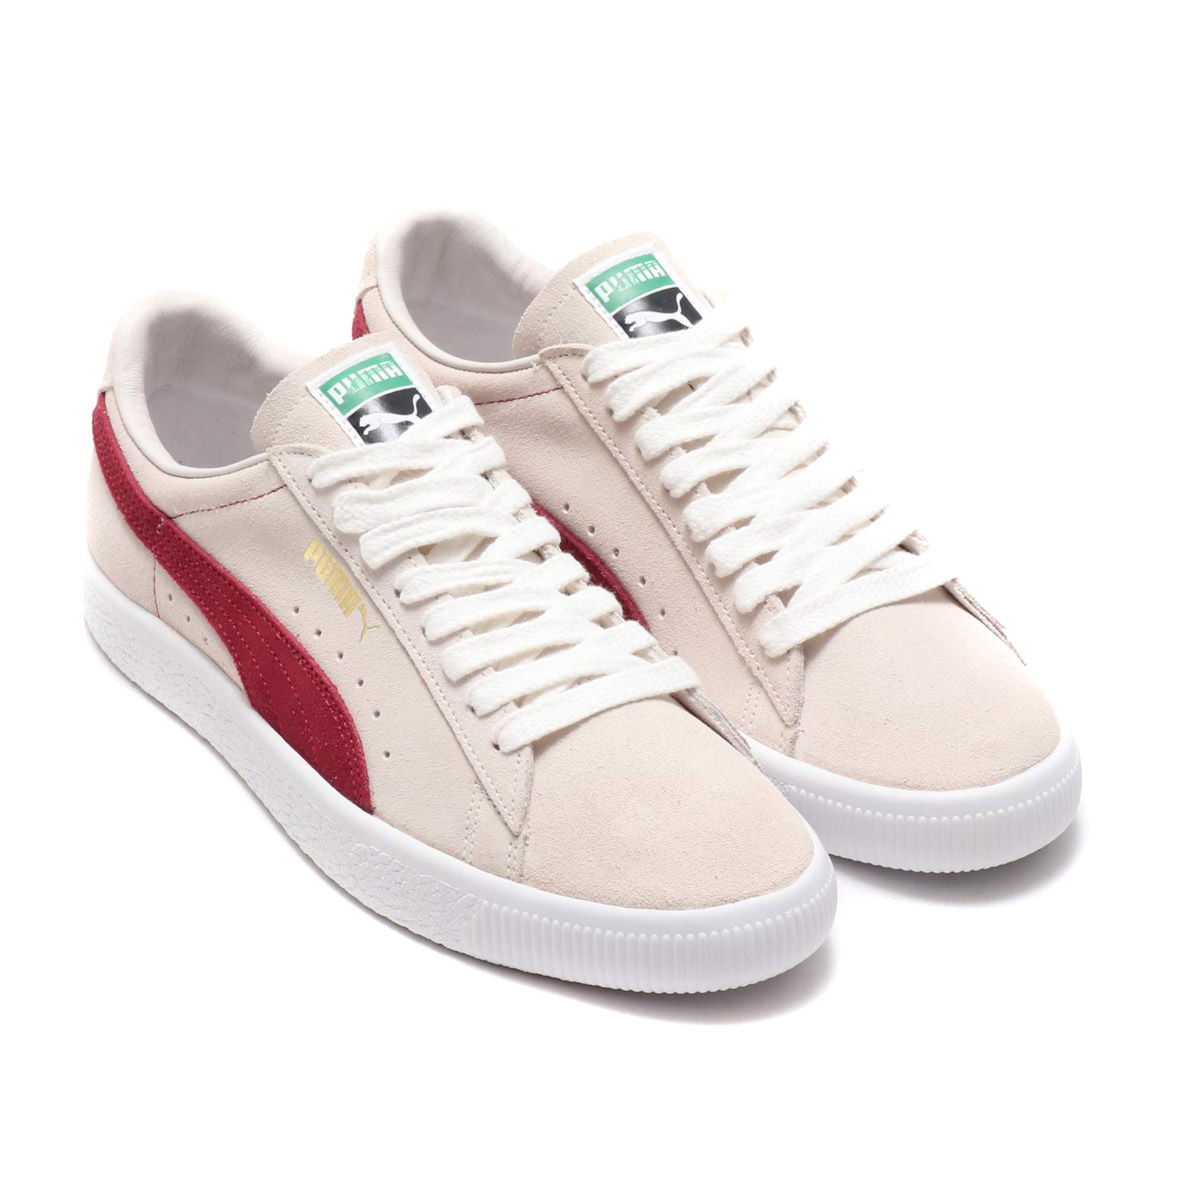 PUMA SUEDE 90681 (プーマ スエード 90682) (WHISPER WHITE)18FW-S